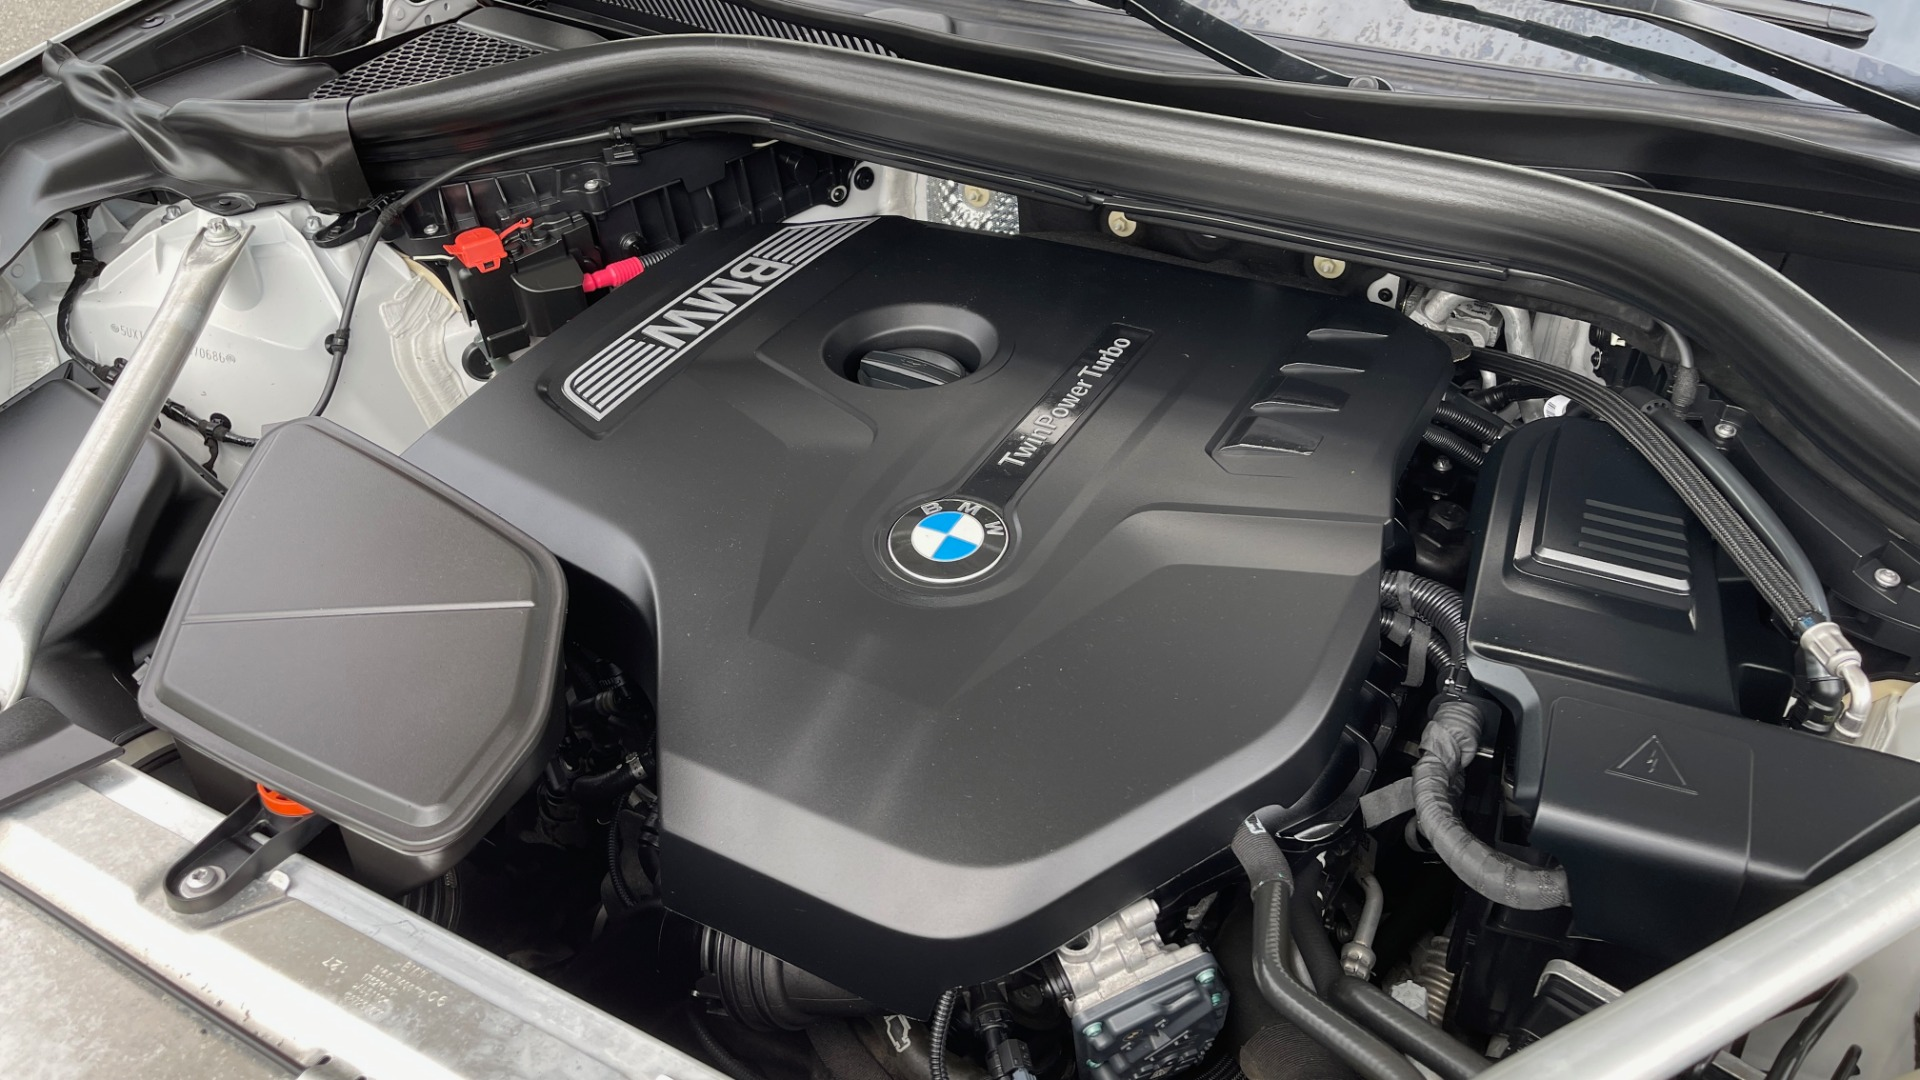 Used 2018 BMW X3 XDRIVE30I / NAV / PANO-ROOF / HTD STS / PARK DIST CNTRL / REARVIEW for sale $38,995 at Formula Imports in Charlotte NC 28227 9